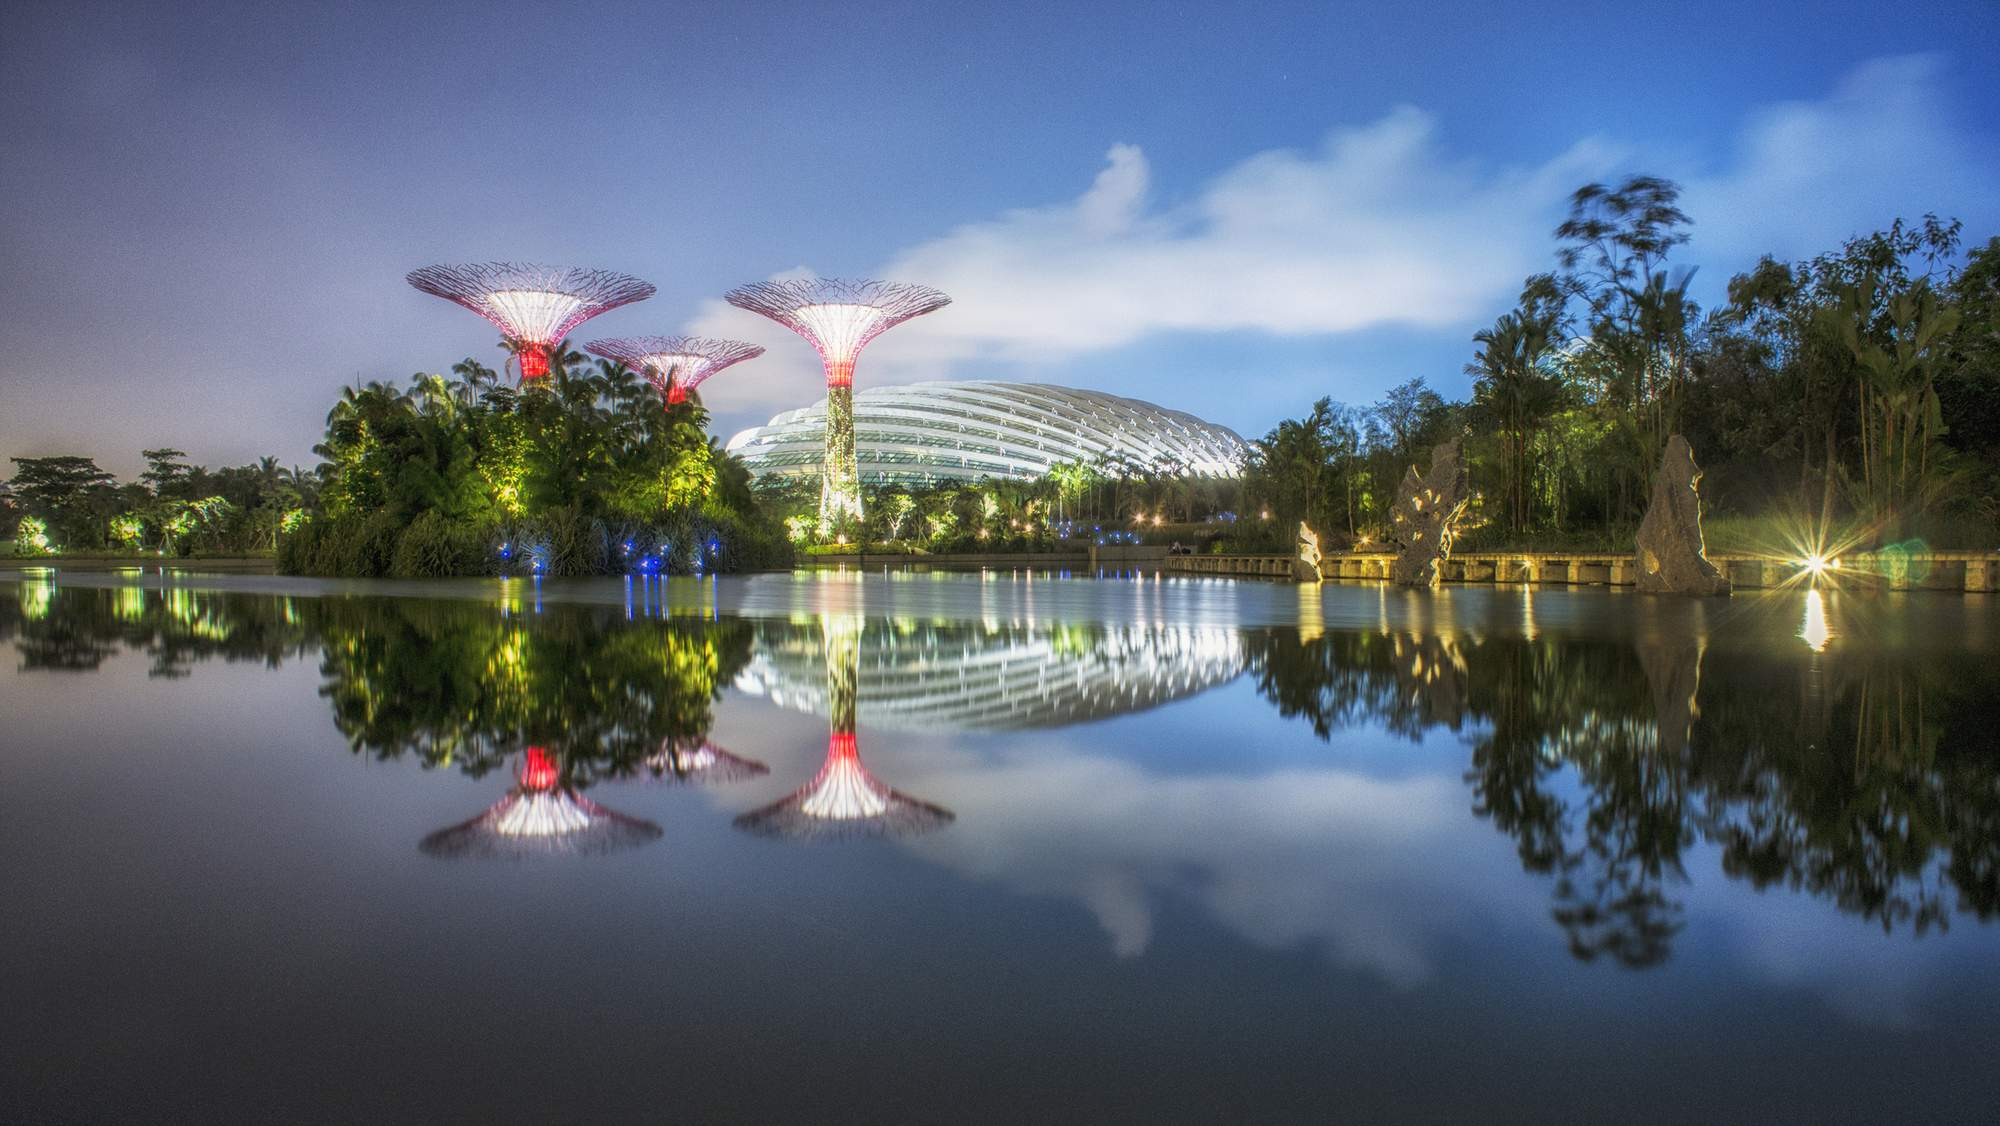 Gardens by the Bay in the heart of Marina Bay, Singapore